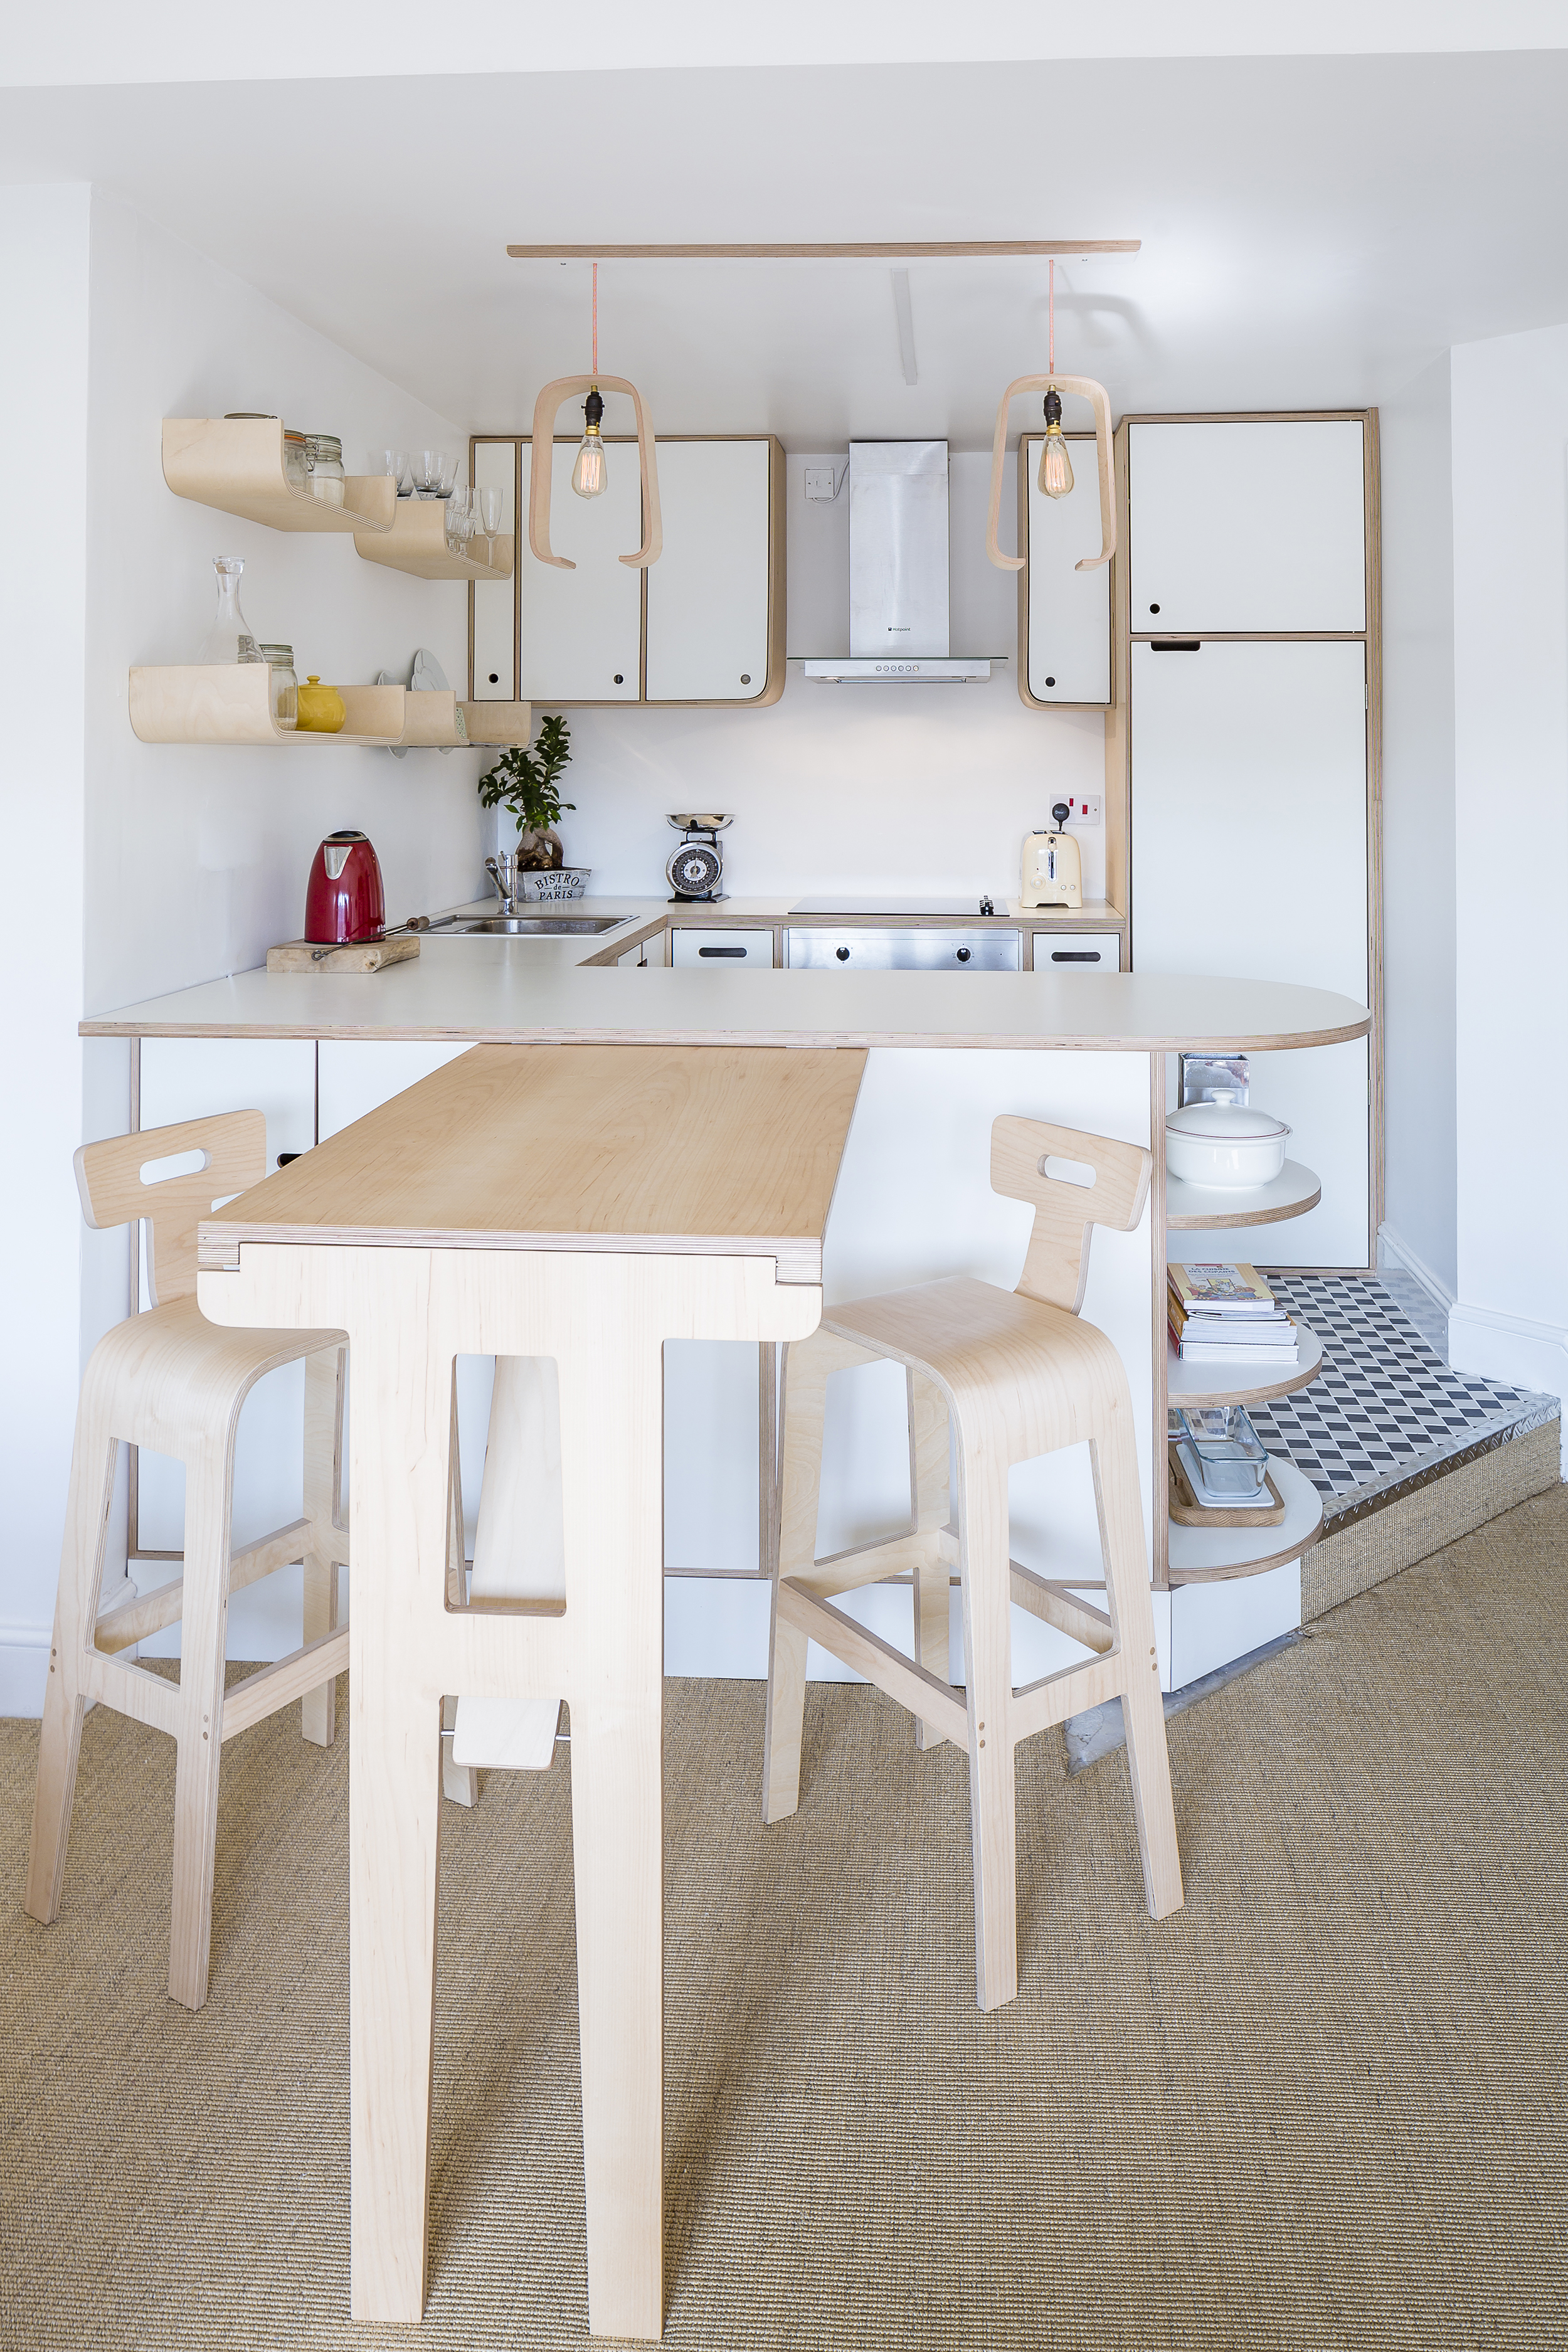 Fabienne wanted a folding table so her neat living room wouldn't be too crowded.